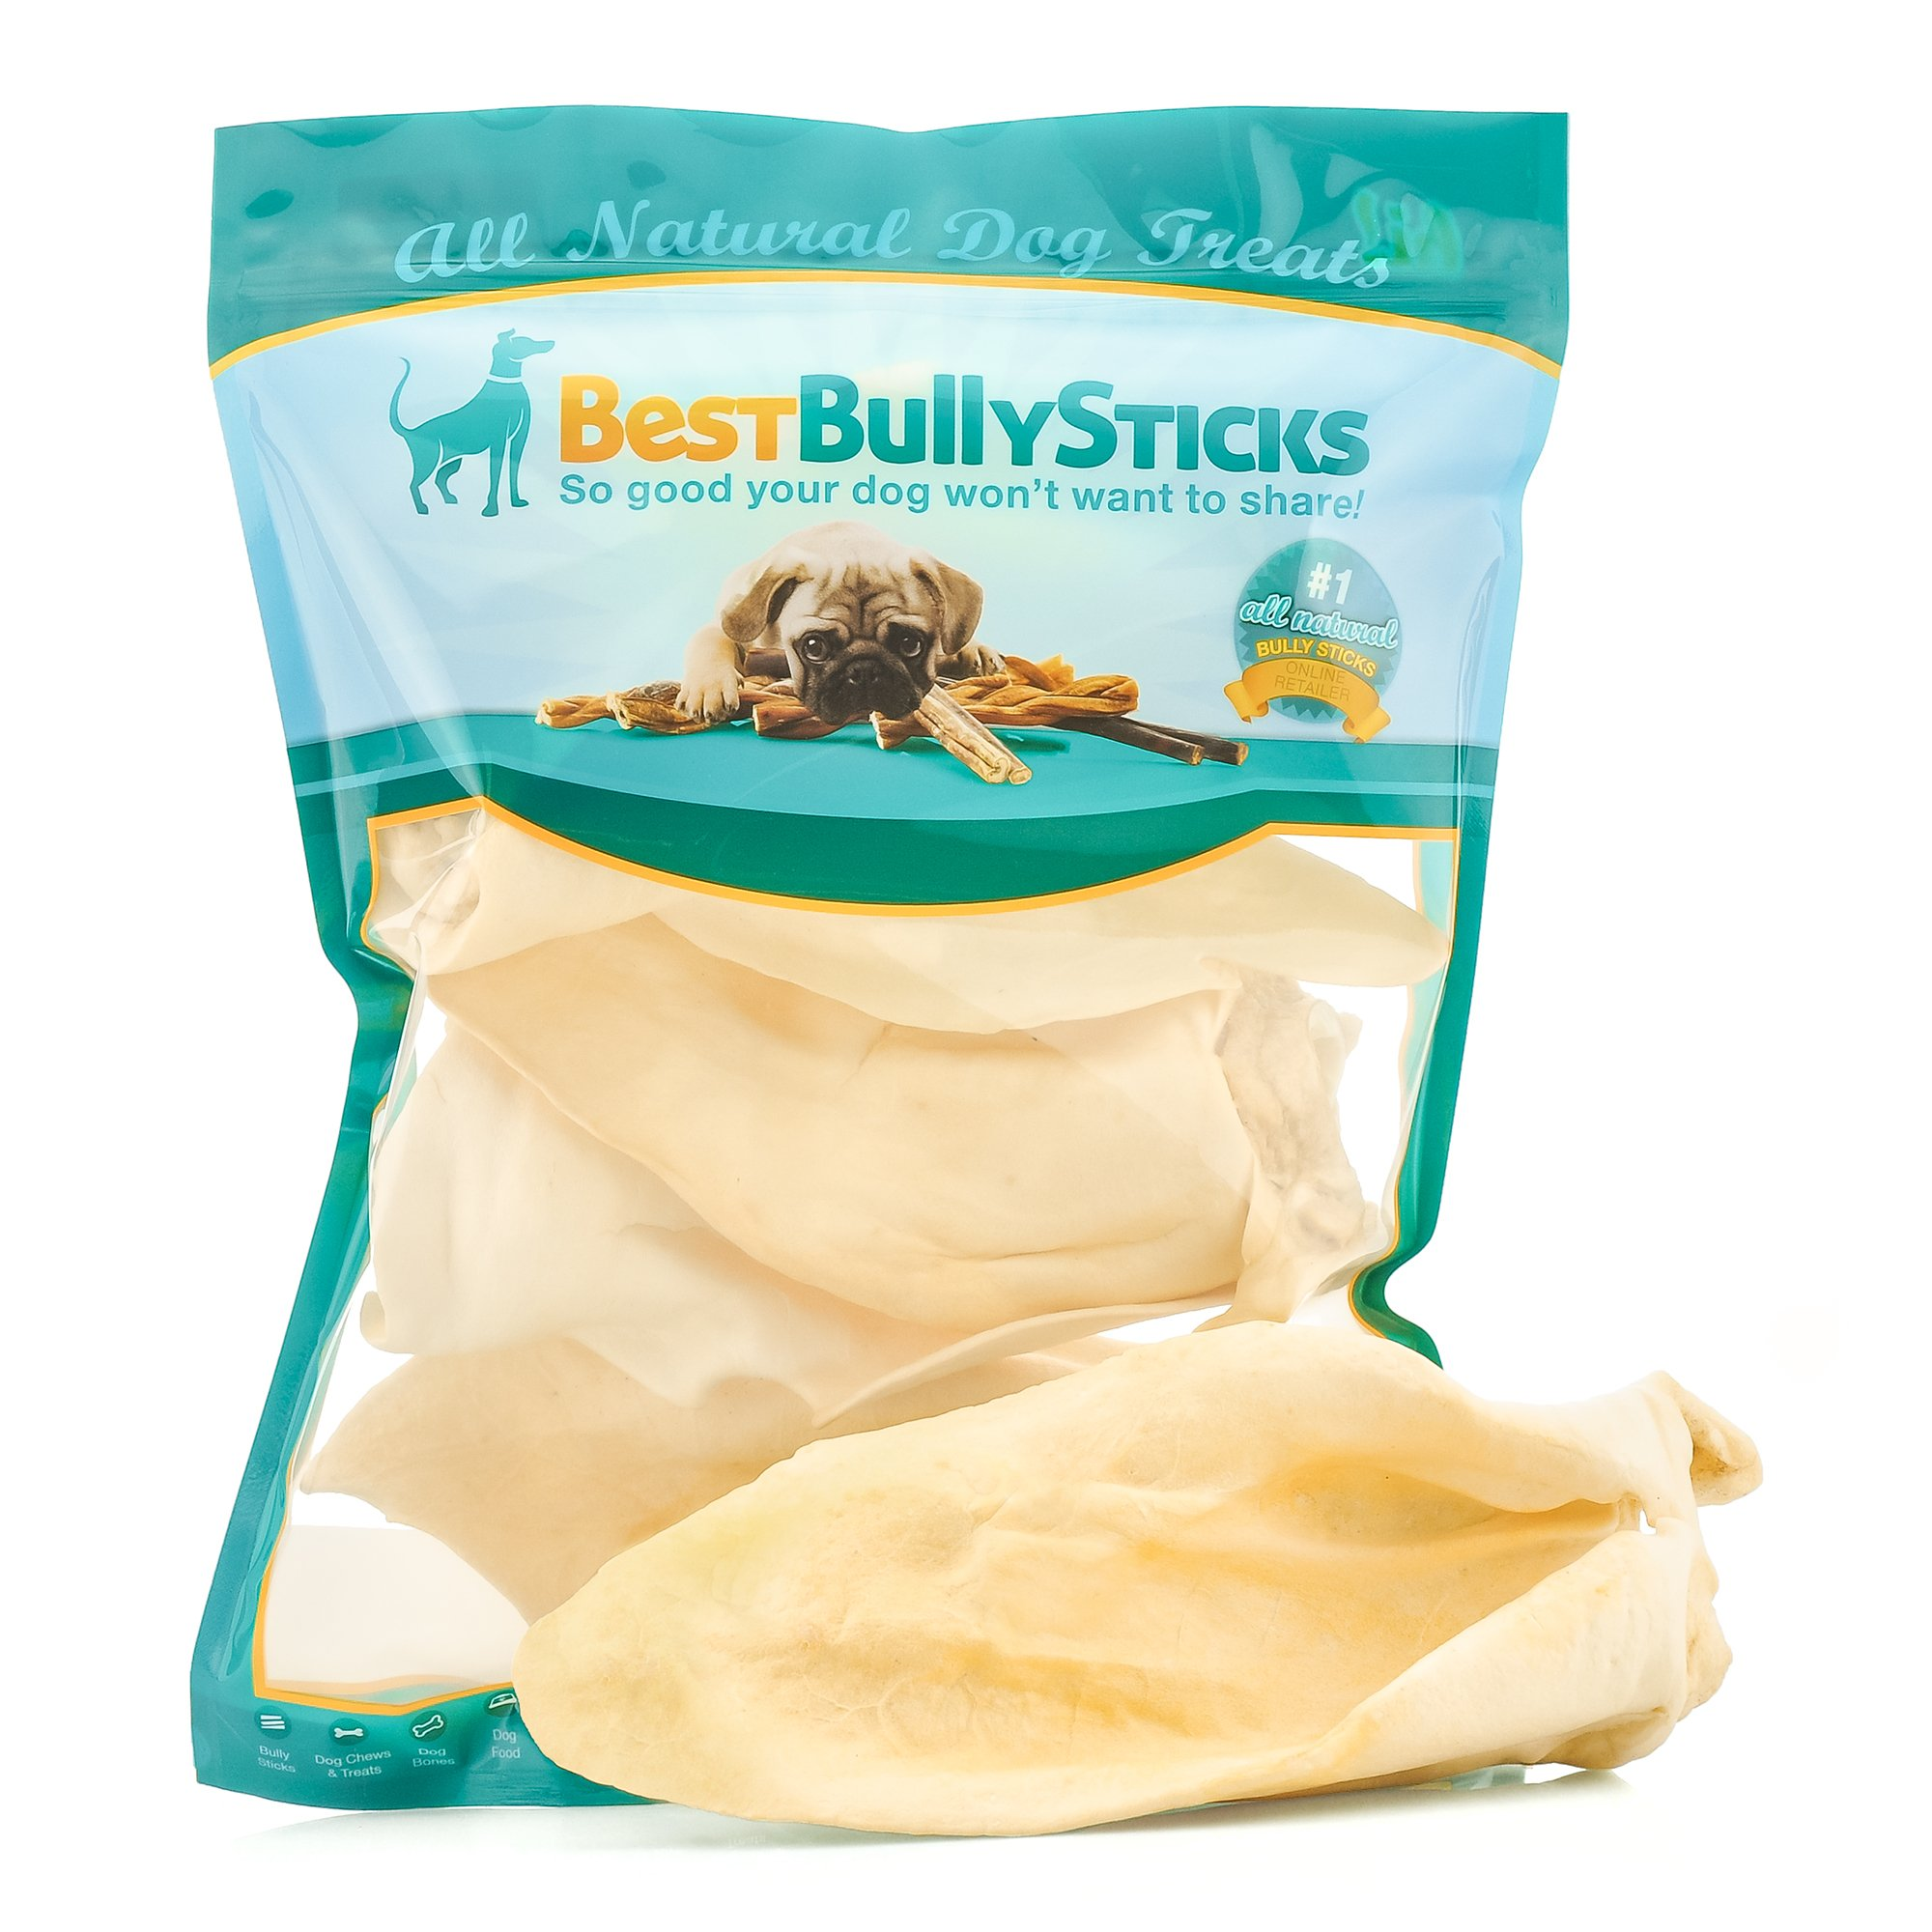 Best Bully Sticks Mega Prime Thick-Cut Cow Ear Dog Chews by (5 Pack) Sourced From All Natural, Free Range Grass Fed Cattle with No Hormones, Additives or Chemicals - Hand-Inspected USDA/FDA Approved